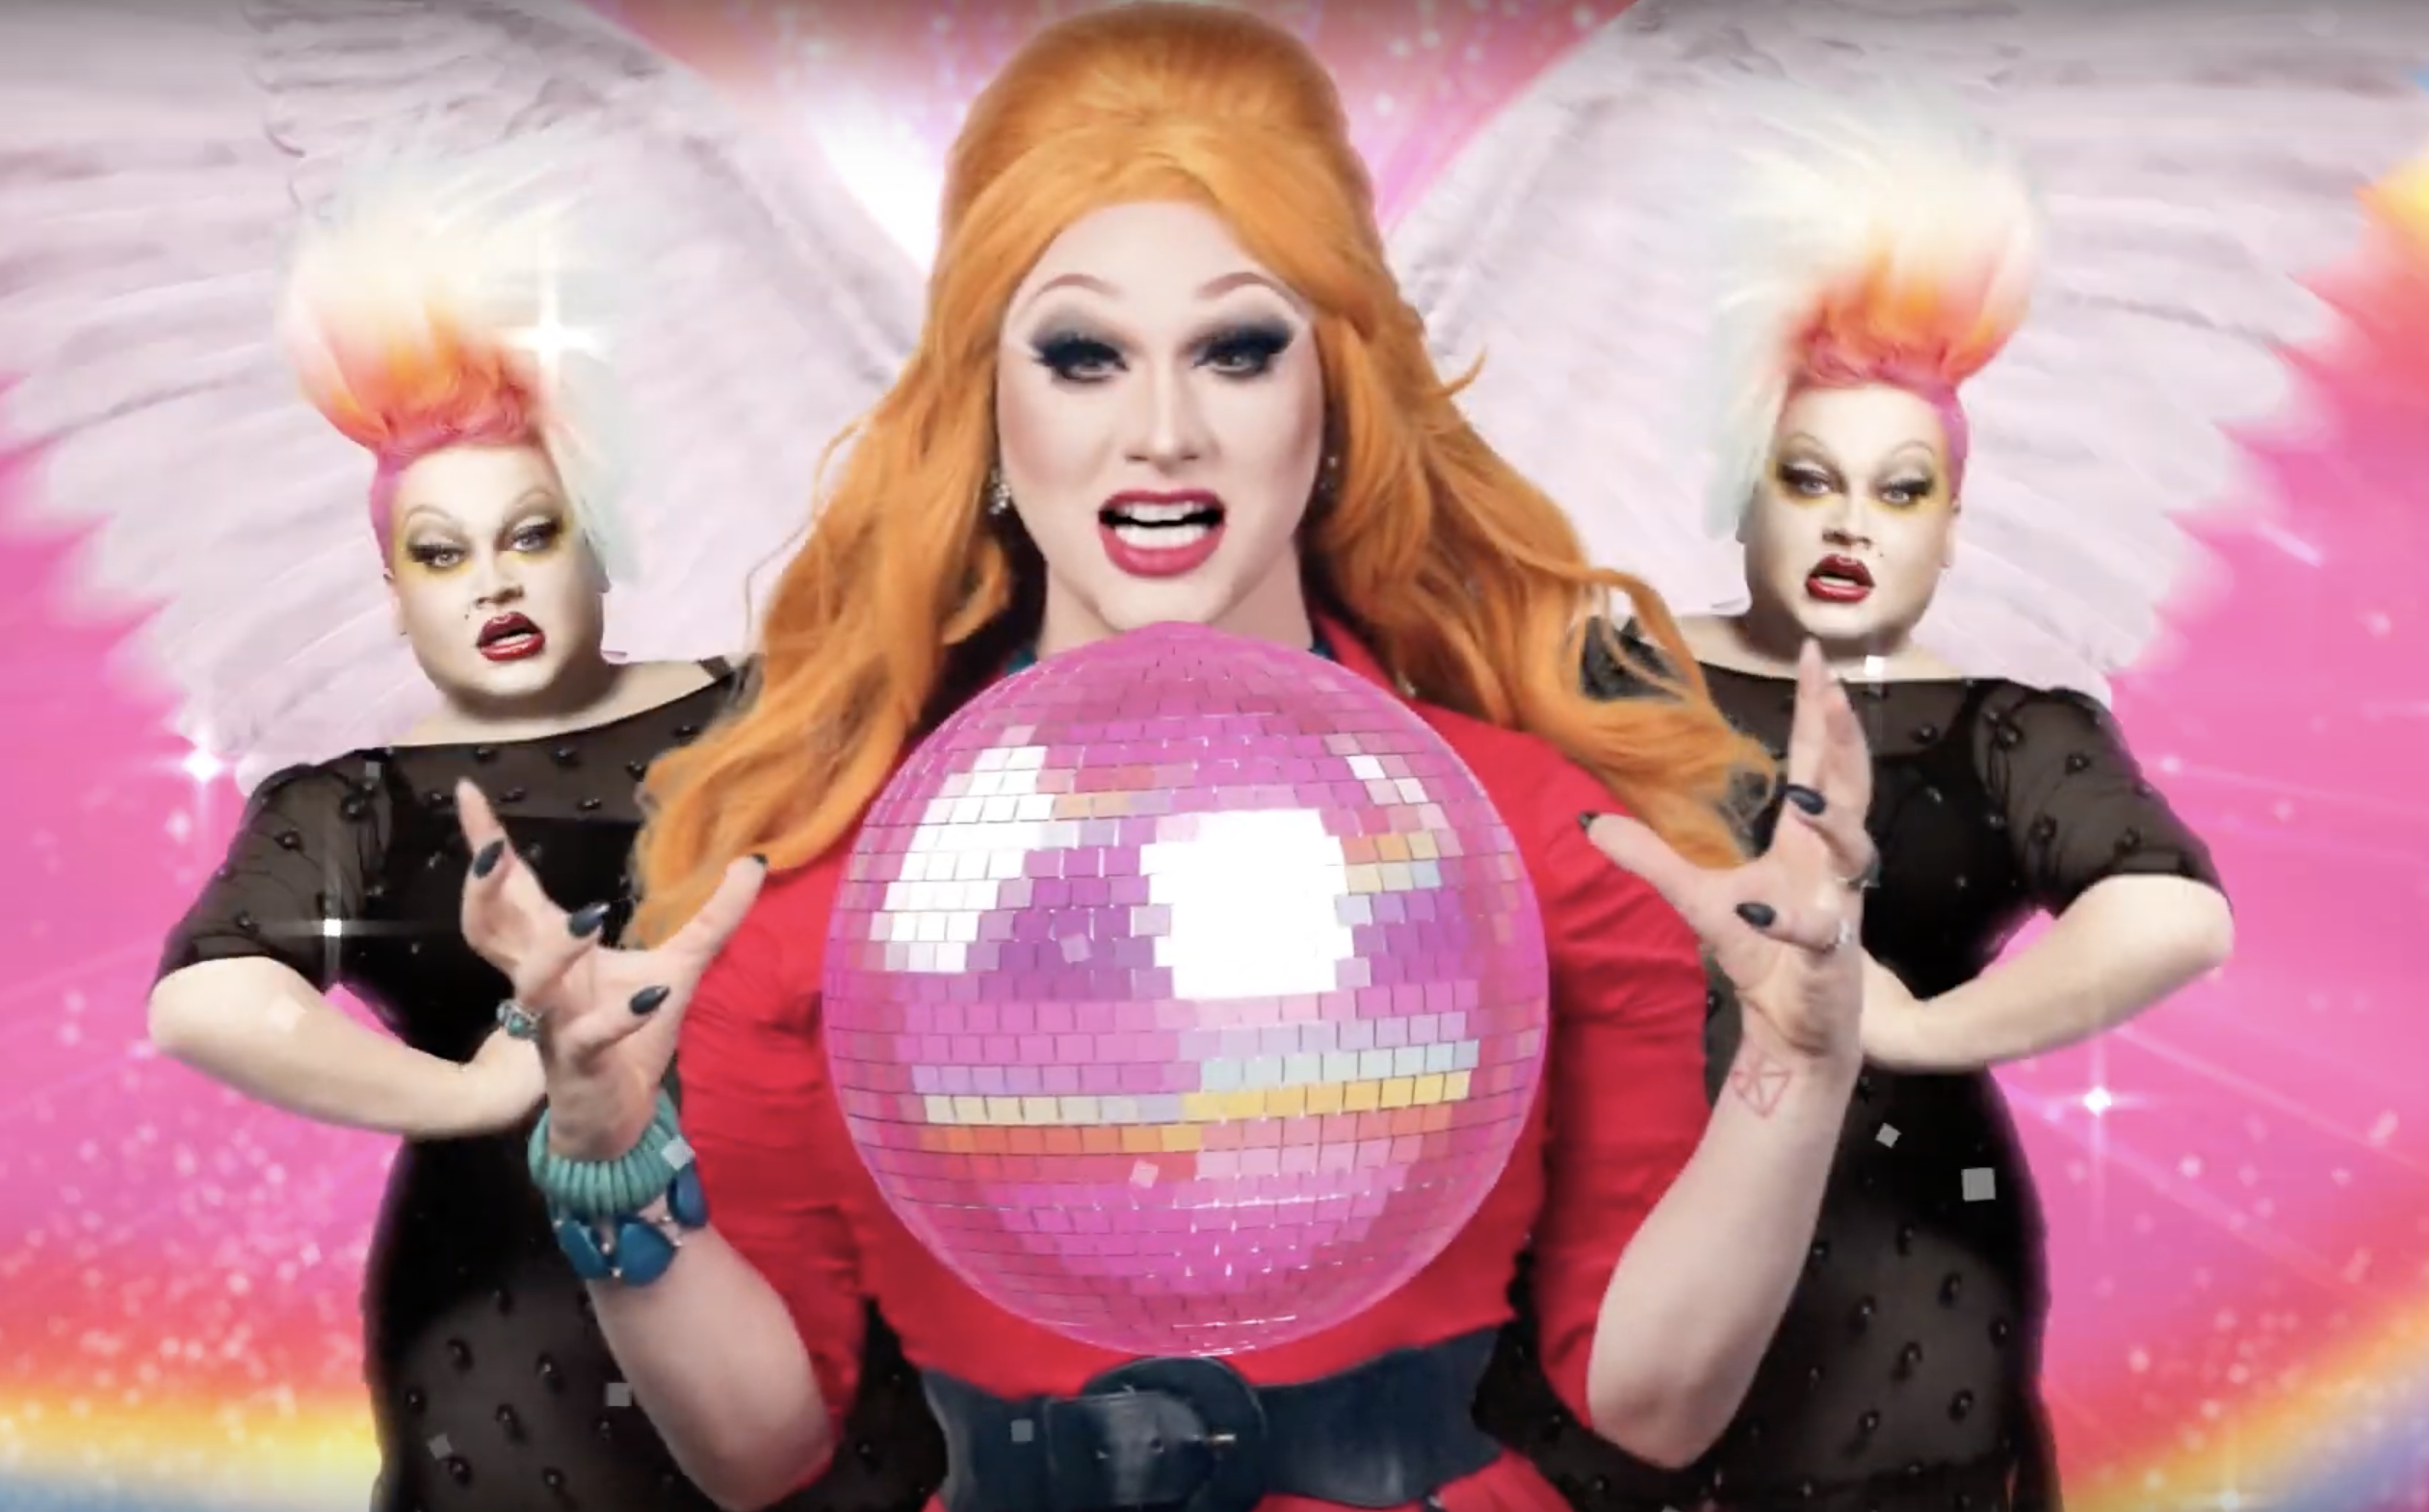 Best Time To Post On Youtube 2020 Drag Queens Ginger Minj and Jinkx Monsoon Will Skate into San